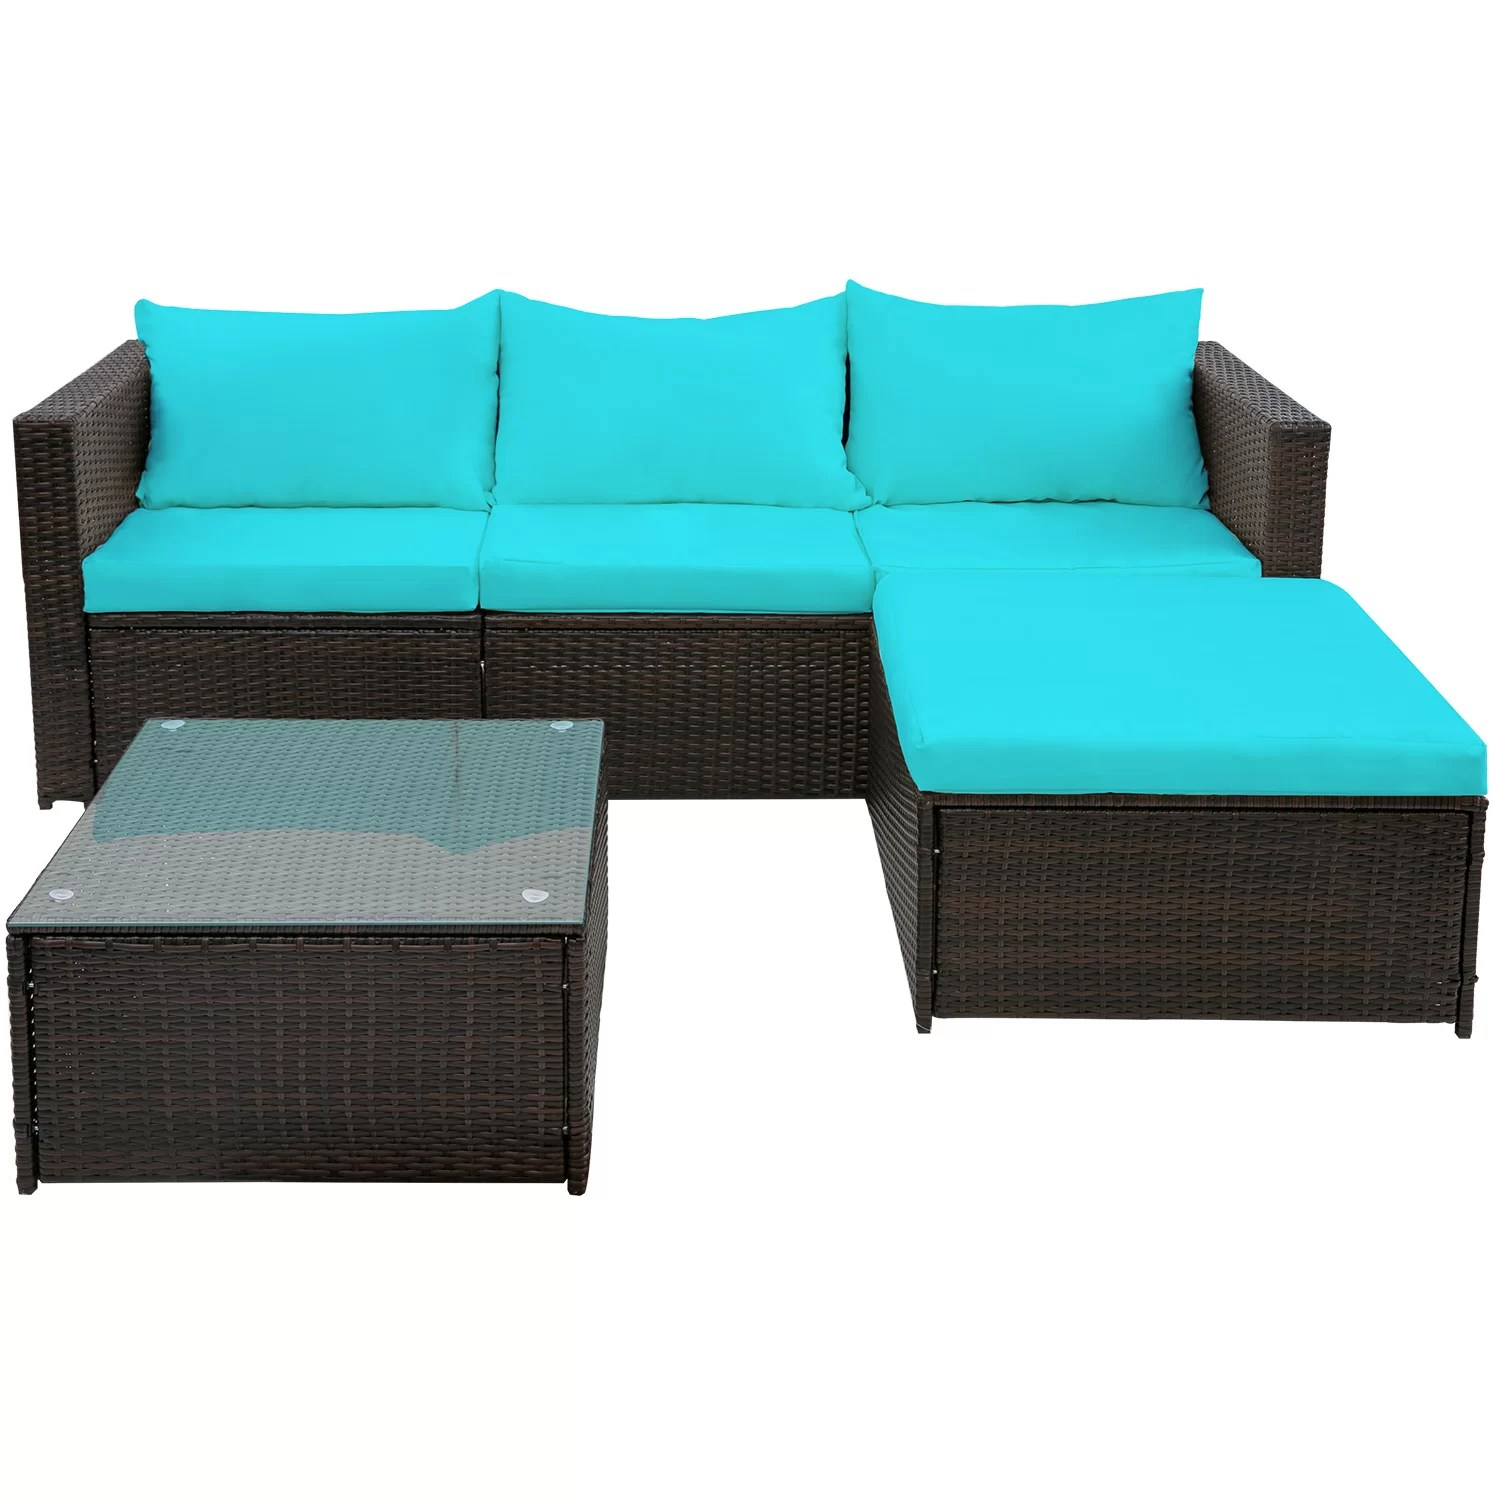 Rattan Sofa Courson 3 Piece Rattan Sofa Seating Group With Cushions